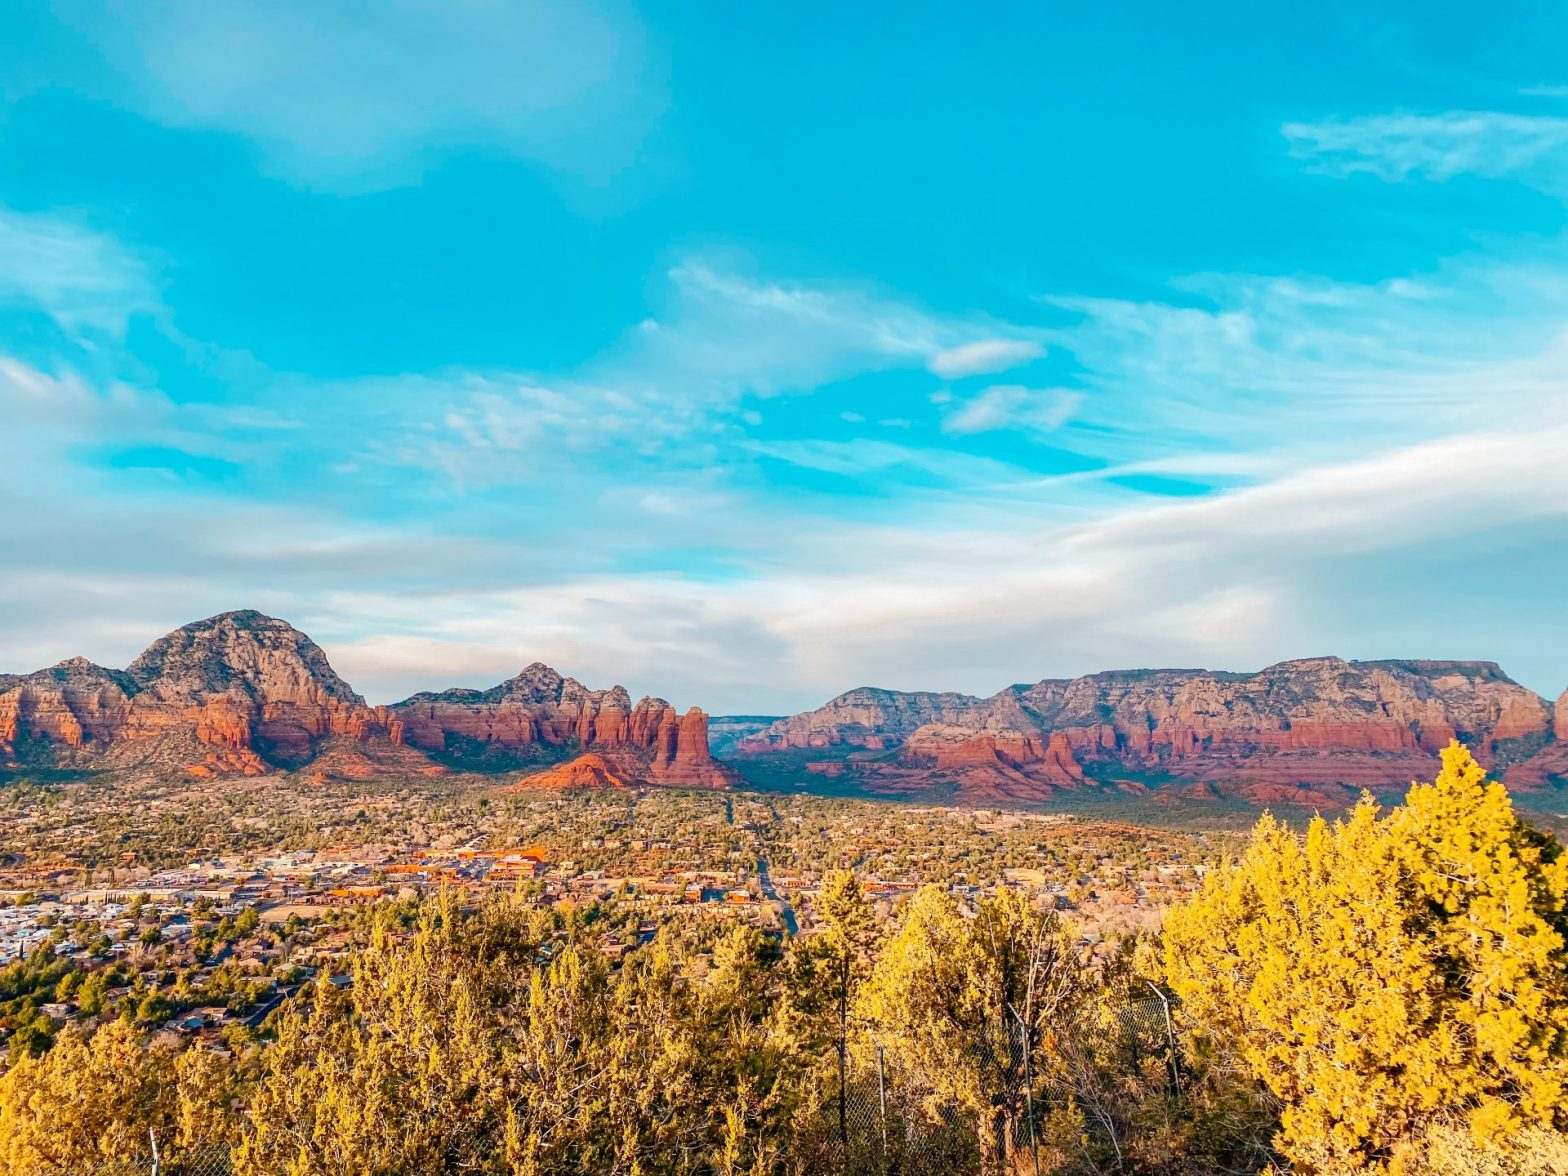 View out over the city of Sedona Arizona seeing the downtown area below and red rock formations in the distance. Fluffy white clouds and a beautiful blue sky are overhead.